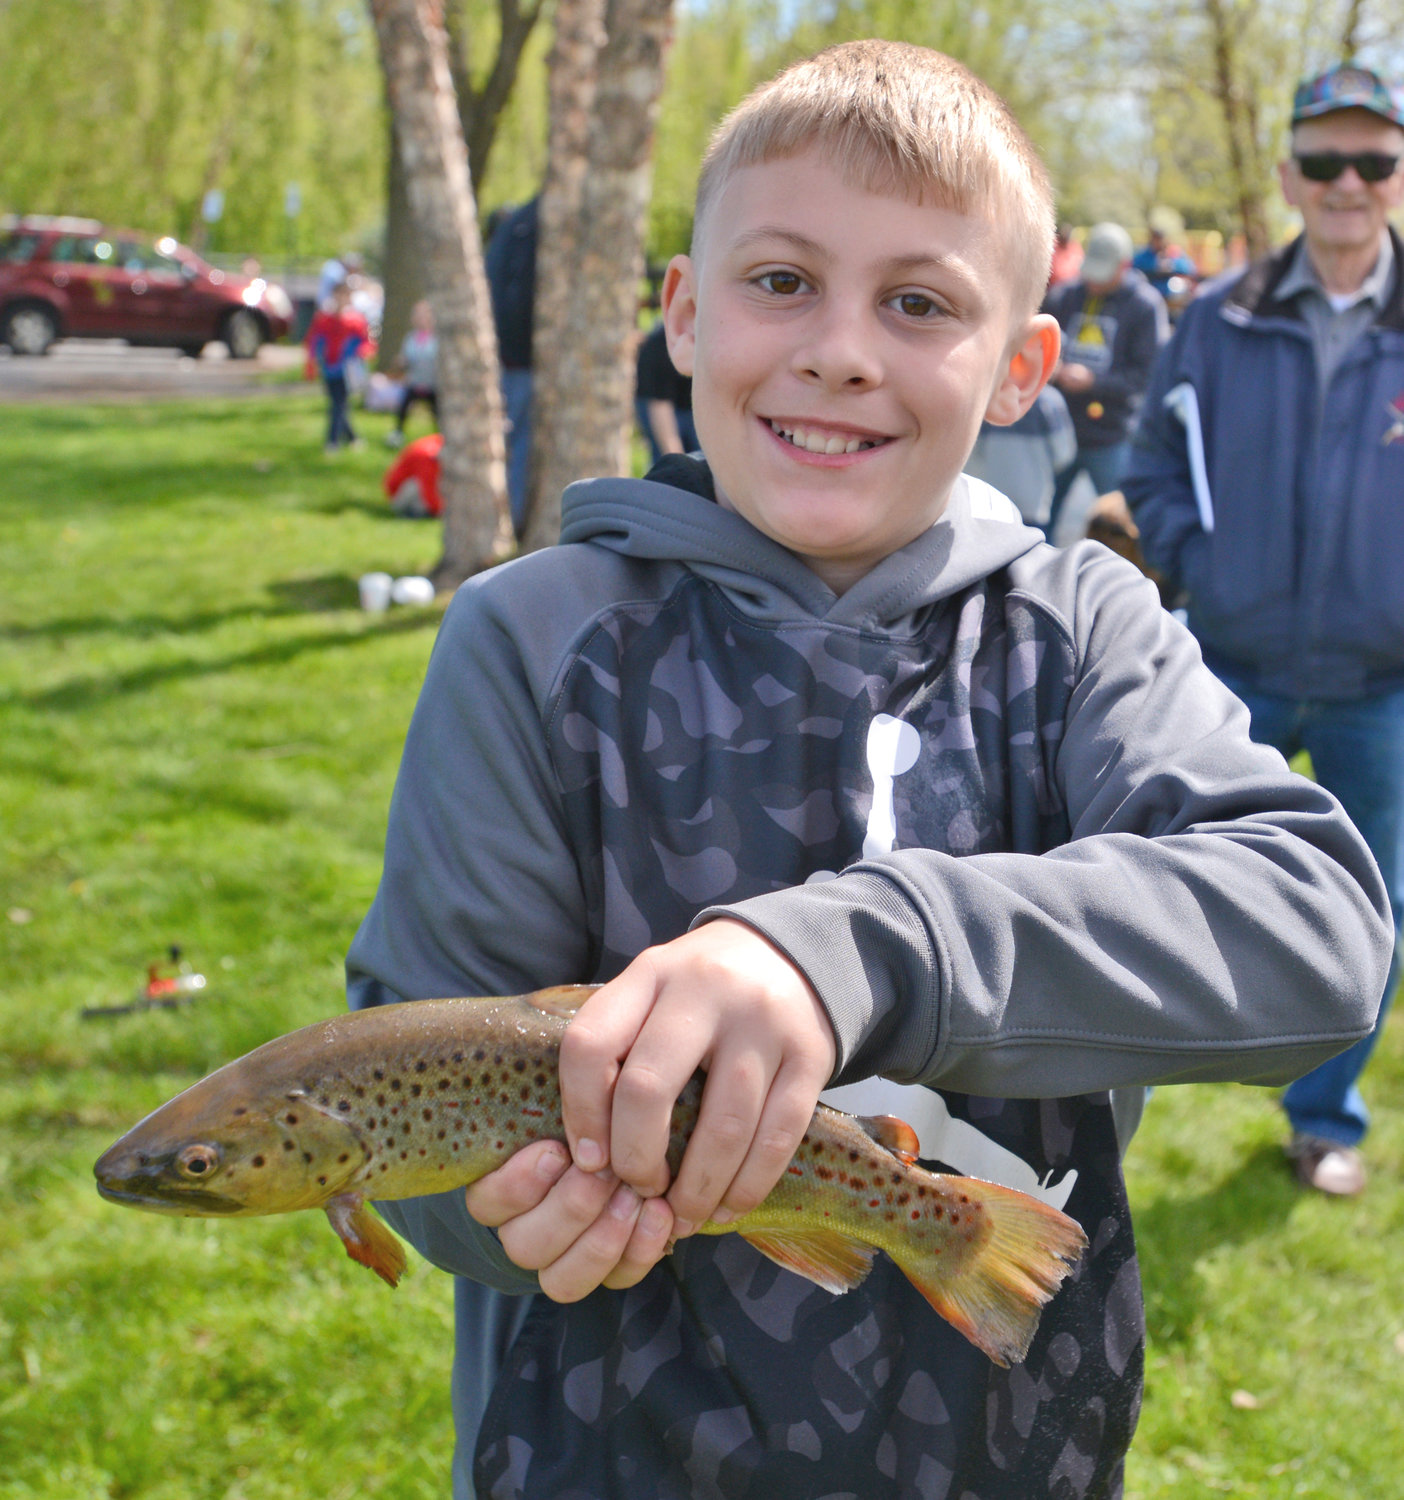 LITTLE LUNKER — Justen Hoffmeister 11, holds up the fish he caught at the Guyer Field fishing derby Saturday morning. He was with his dad, Justen Hoffmeister.